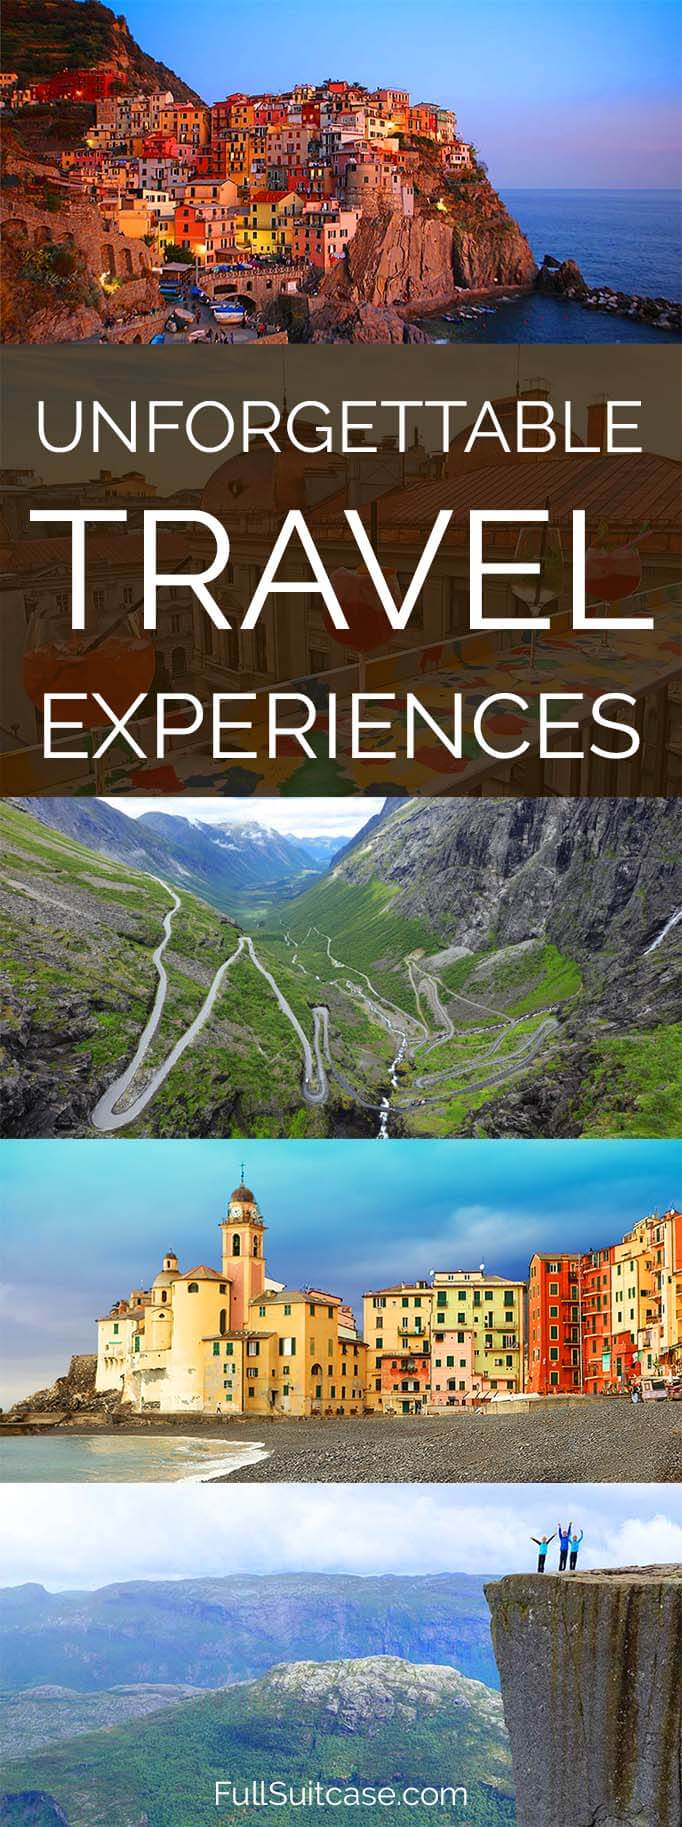 Unforgettable travel experiences - best of the year in #travel #travelinspiration